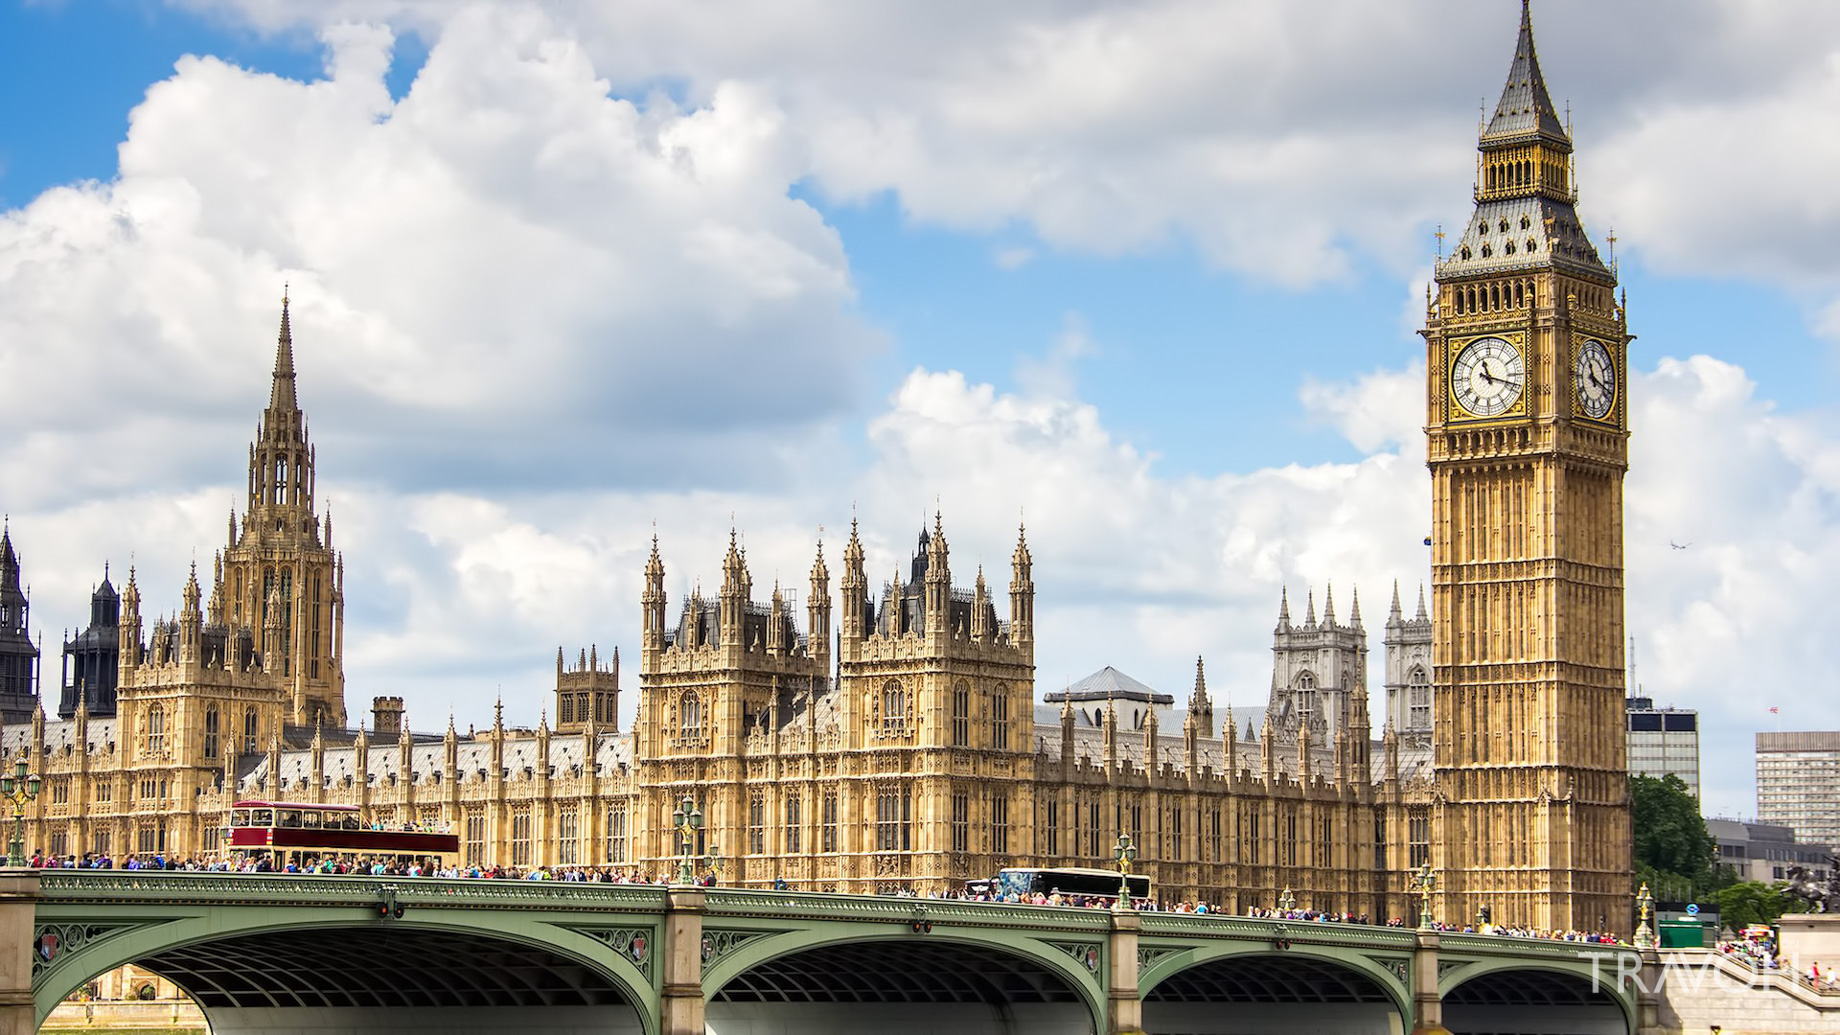 Big Ben - House of Parliament - Westminster, London, United Kingdom